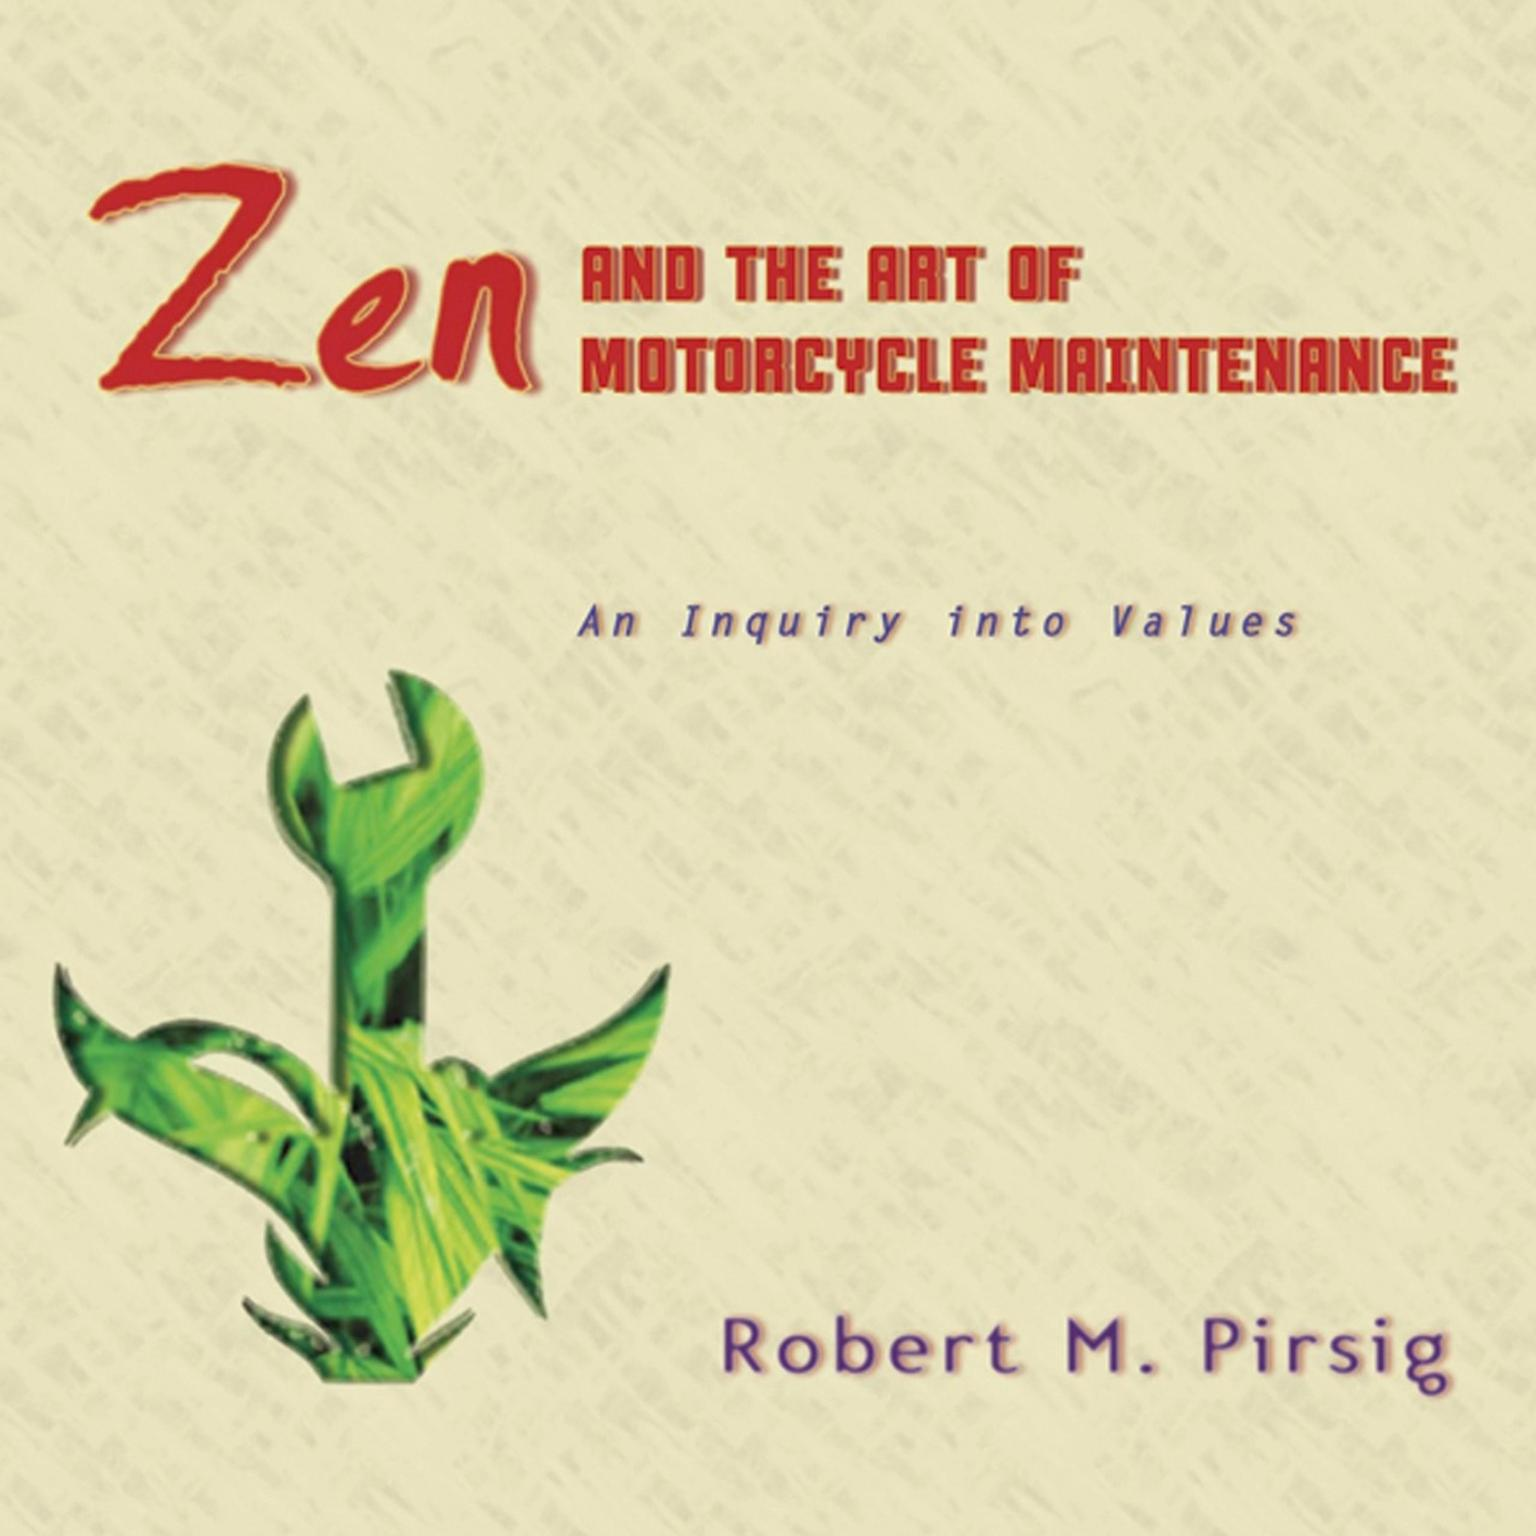 zen and the art of motorcycle The zen house: the art of motorcycle maintenance - 170 main st, point arena, california 95468 - rated 48 based on 16 reviews these catz are awesome.